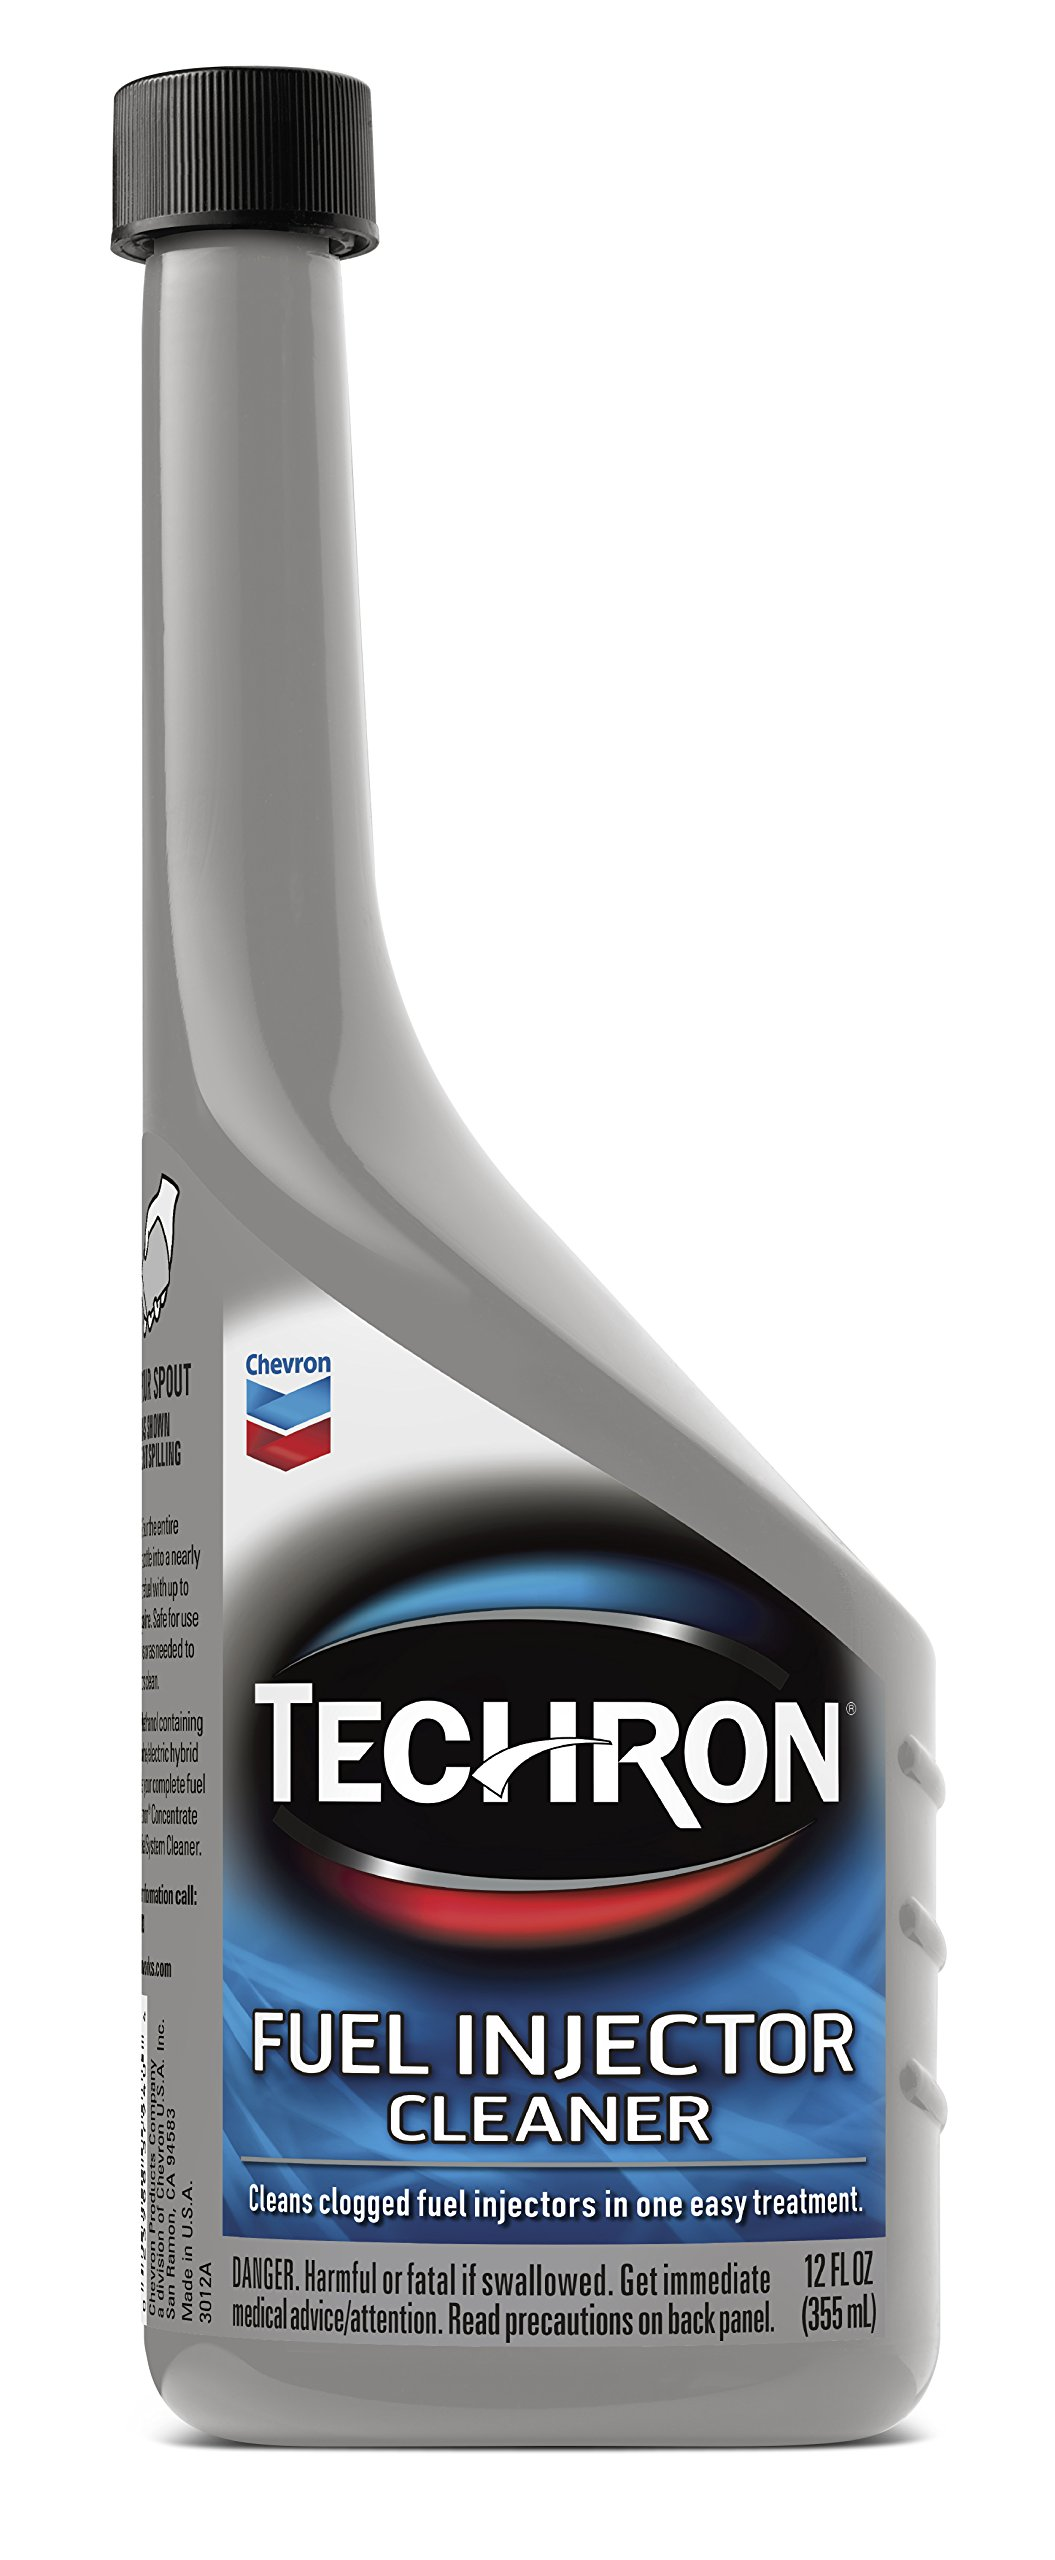 Chevron Techron Fuel Injection Cleaner - 12 oz., (Pack of 6)